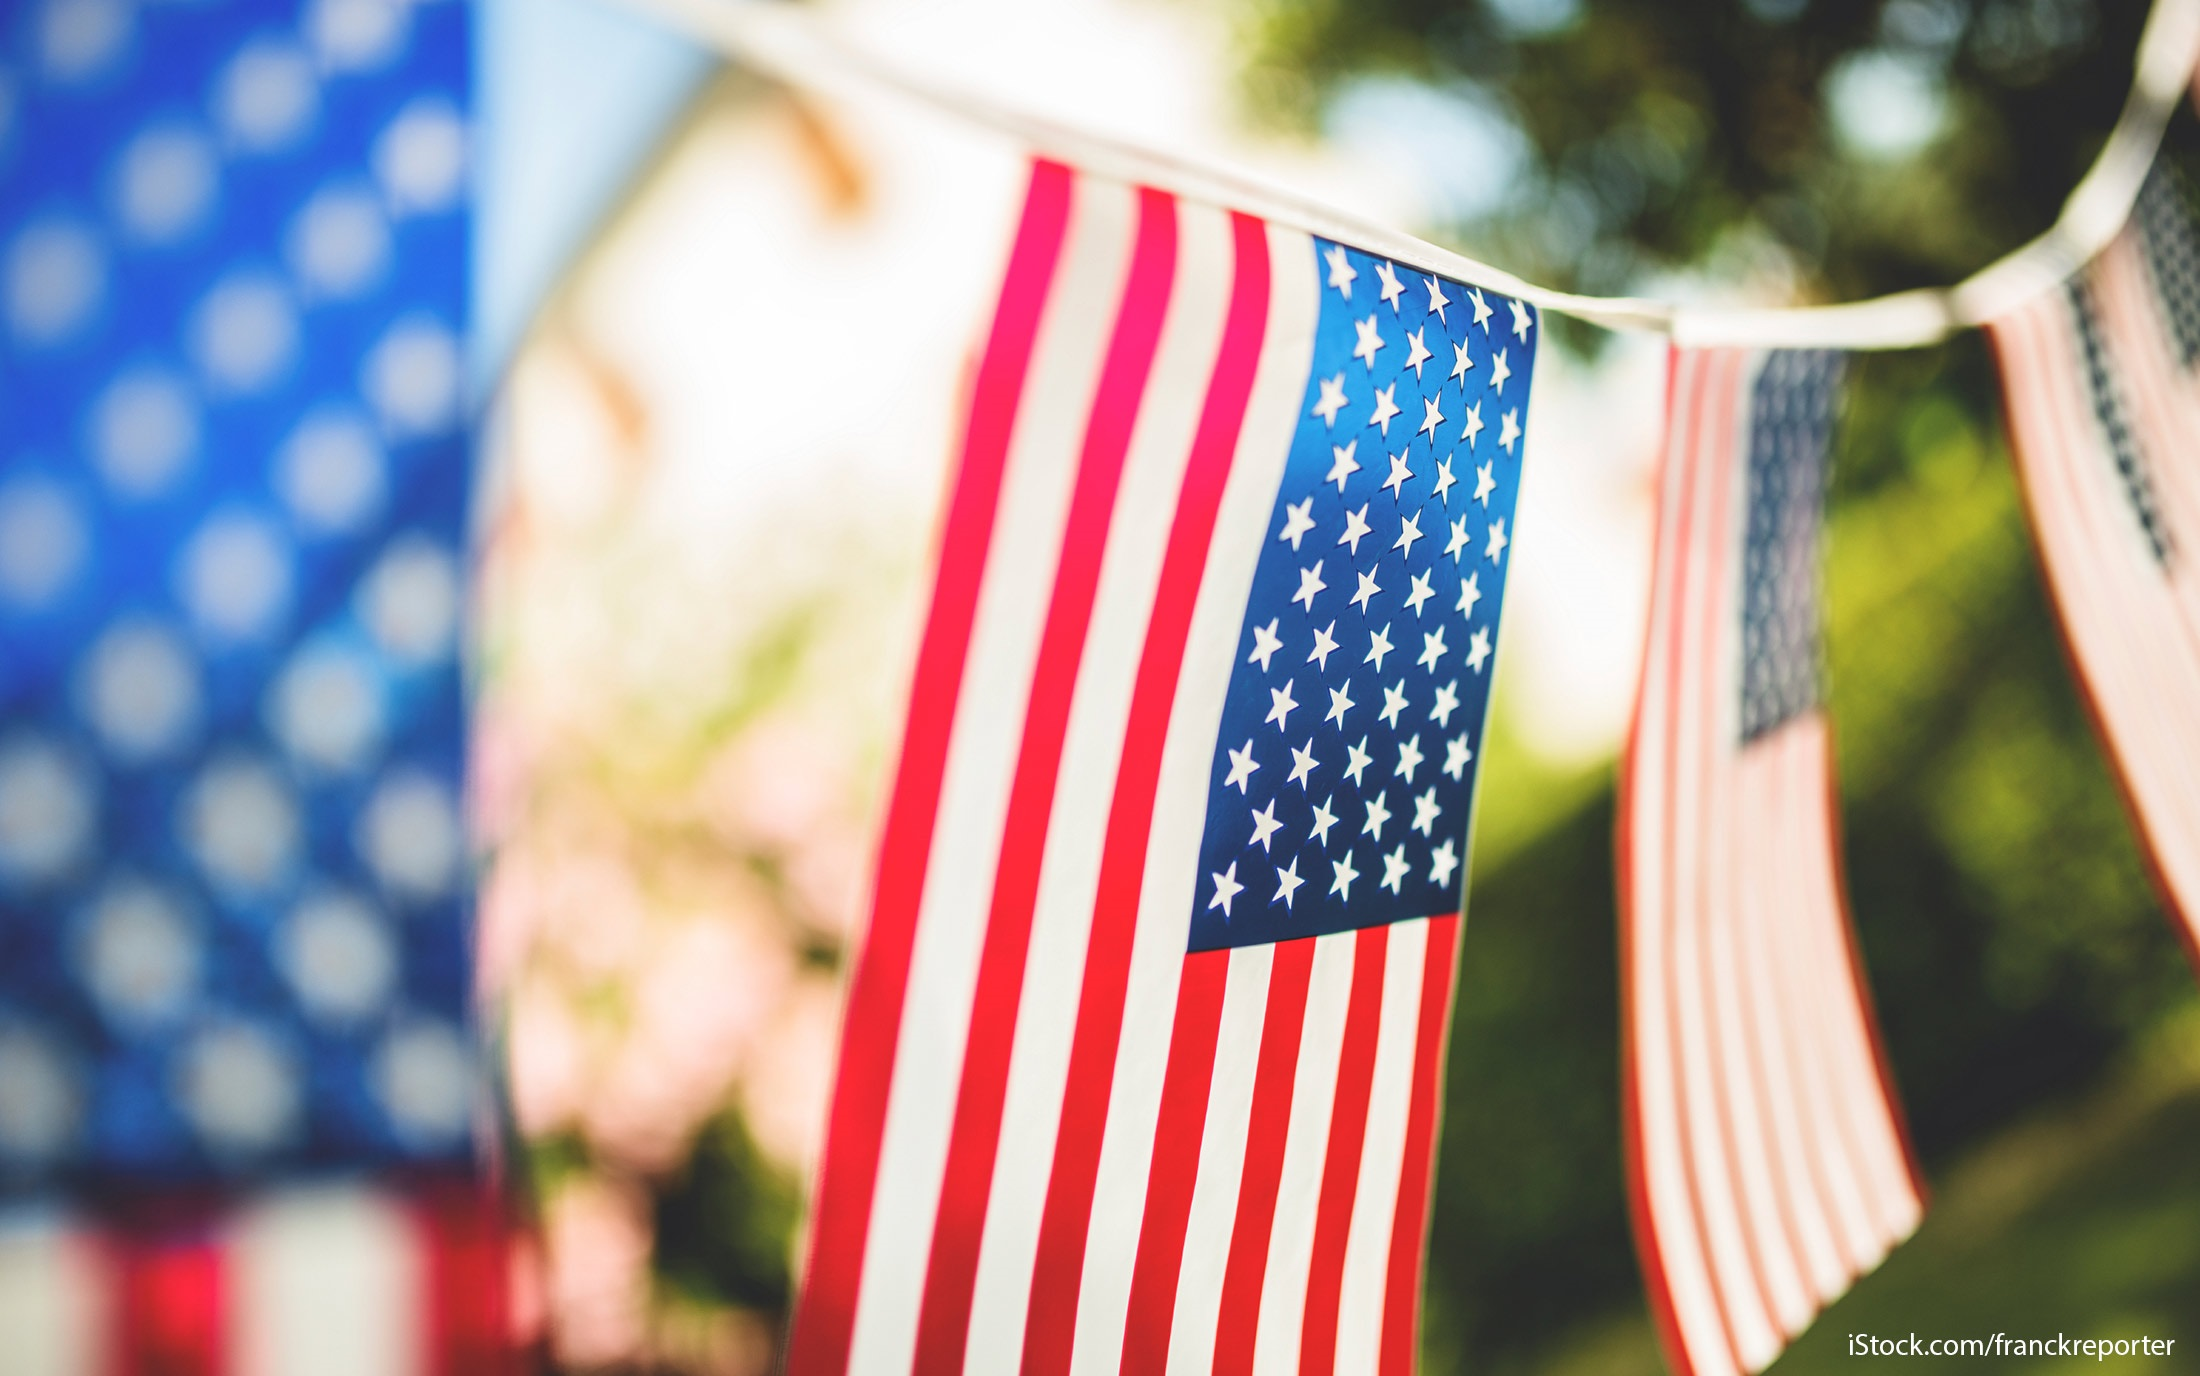 30 memorial day 2016 sales, deals and freebies | gobankingrates